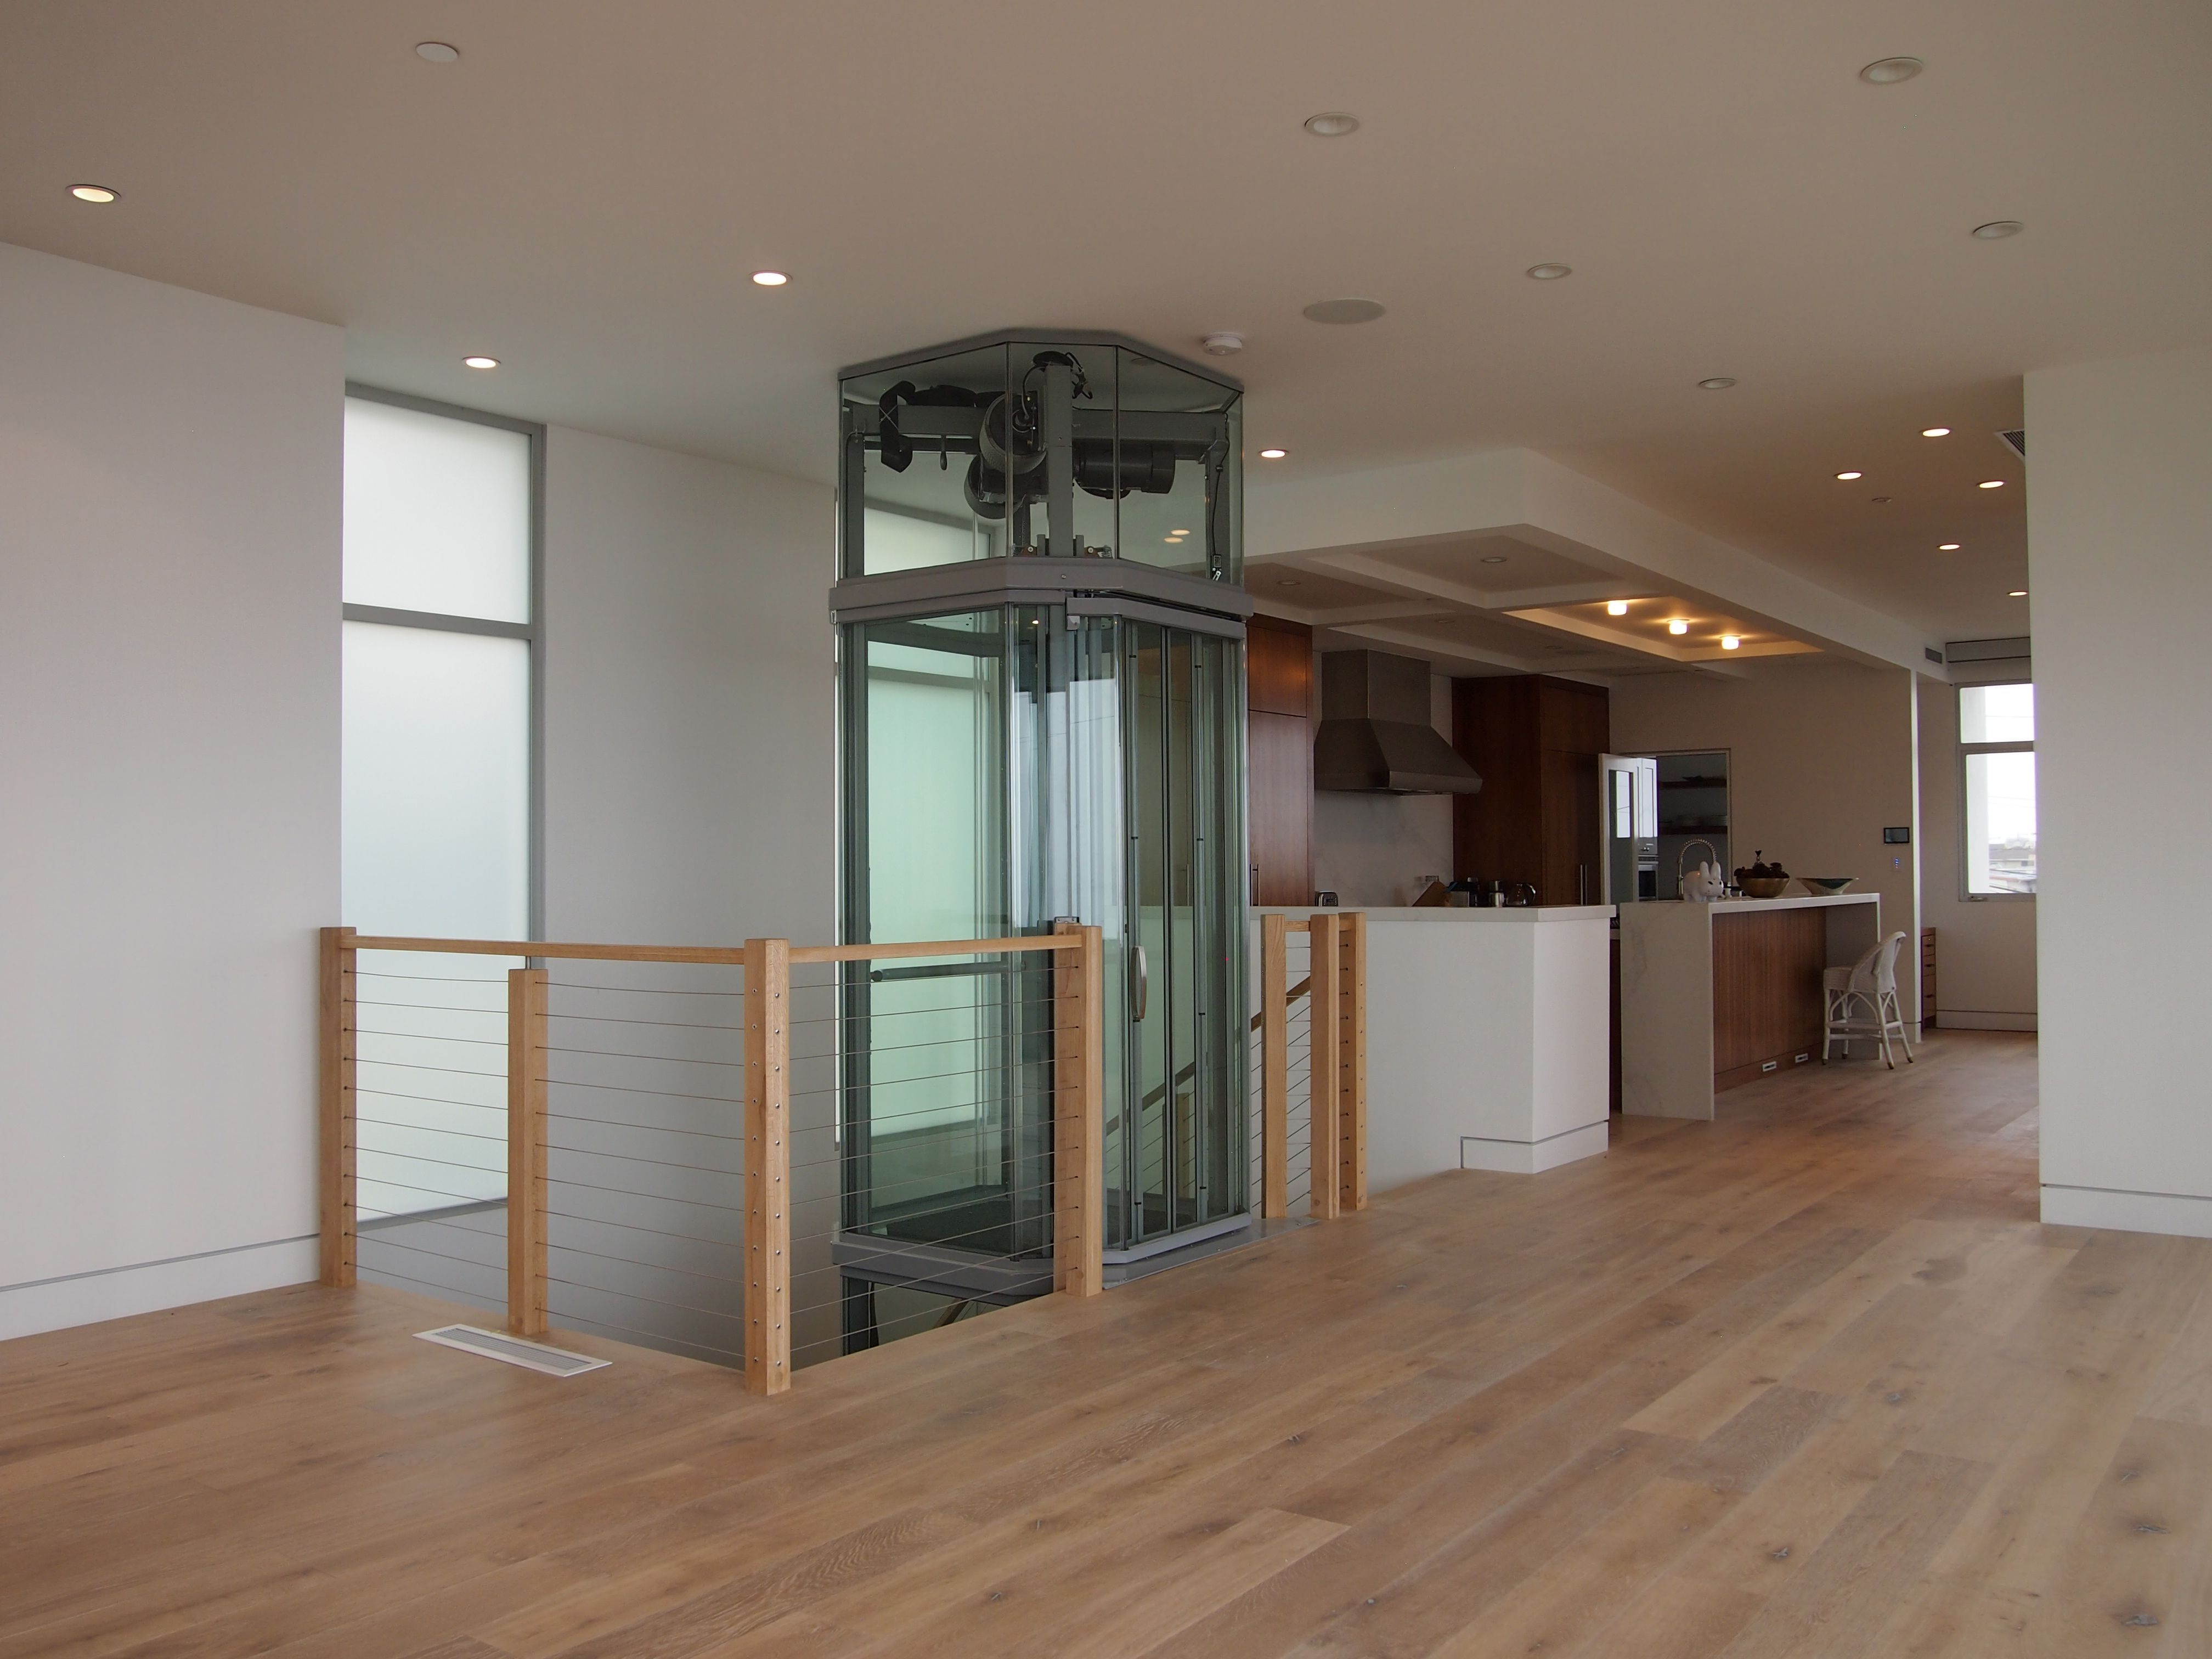 added accessibility never looked so good visilift glass glass octagonal elevator on landing with balcony attachment